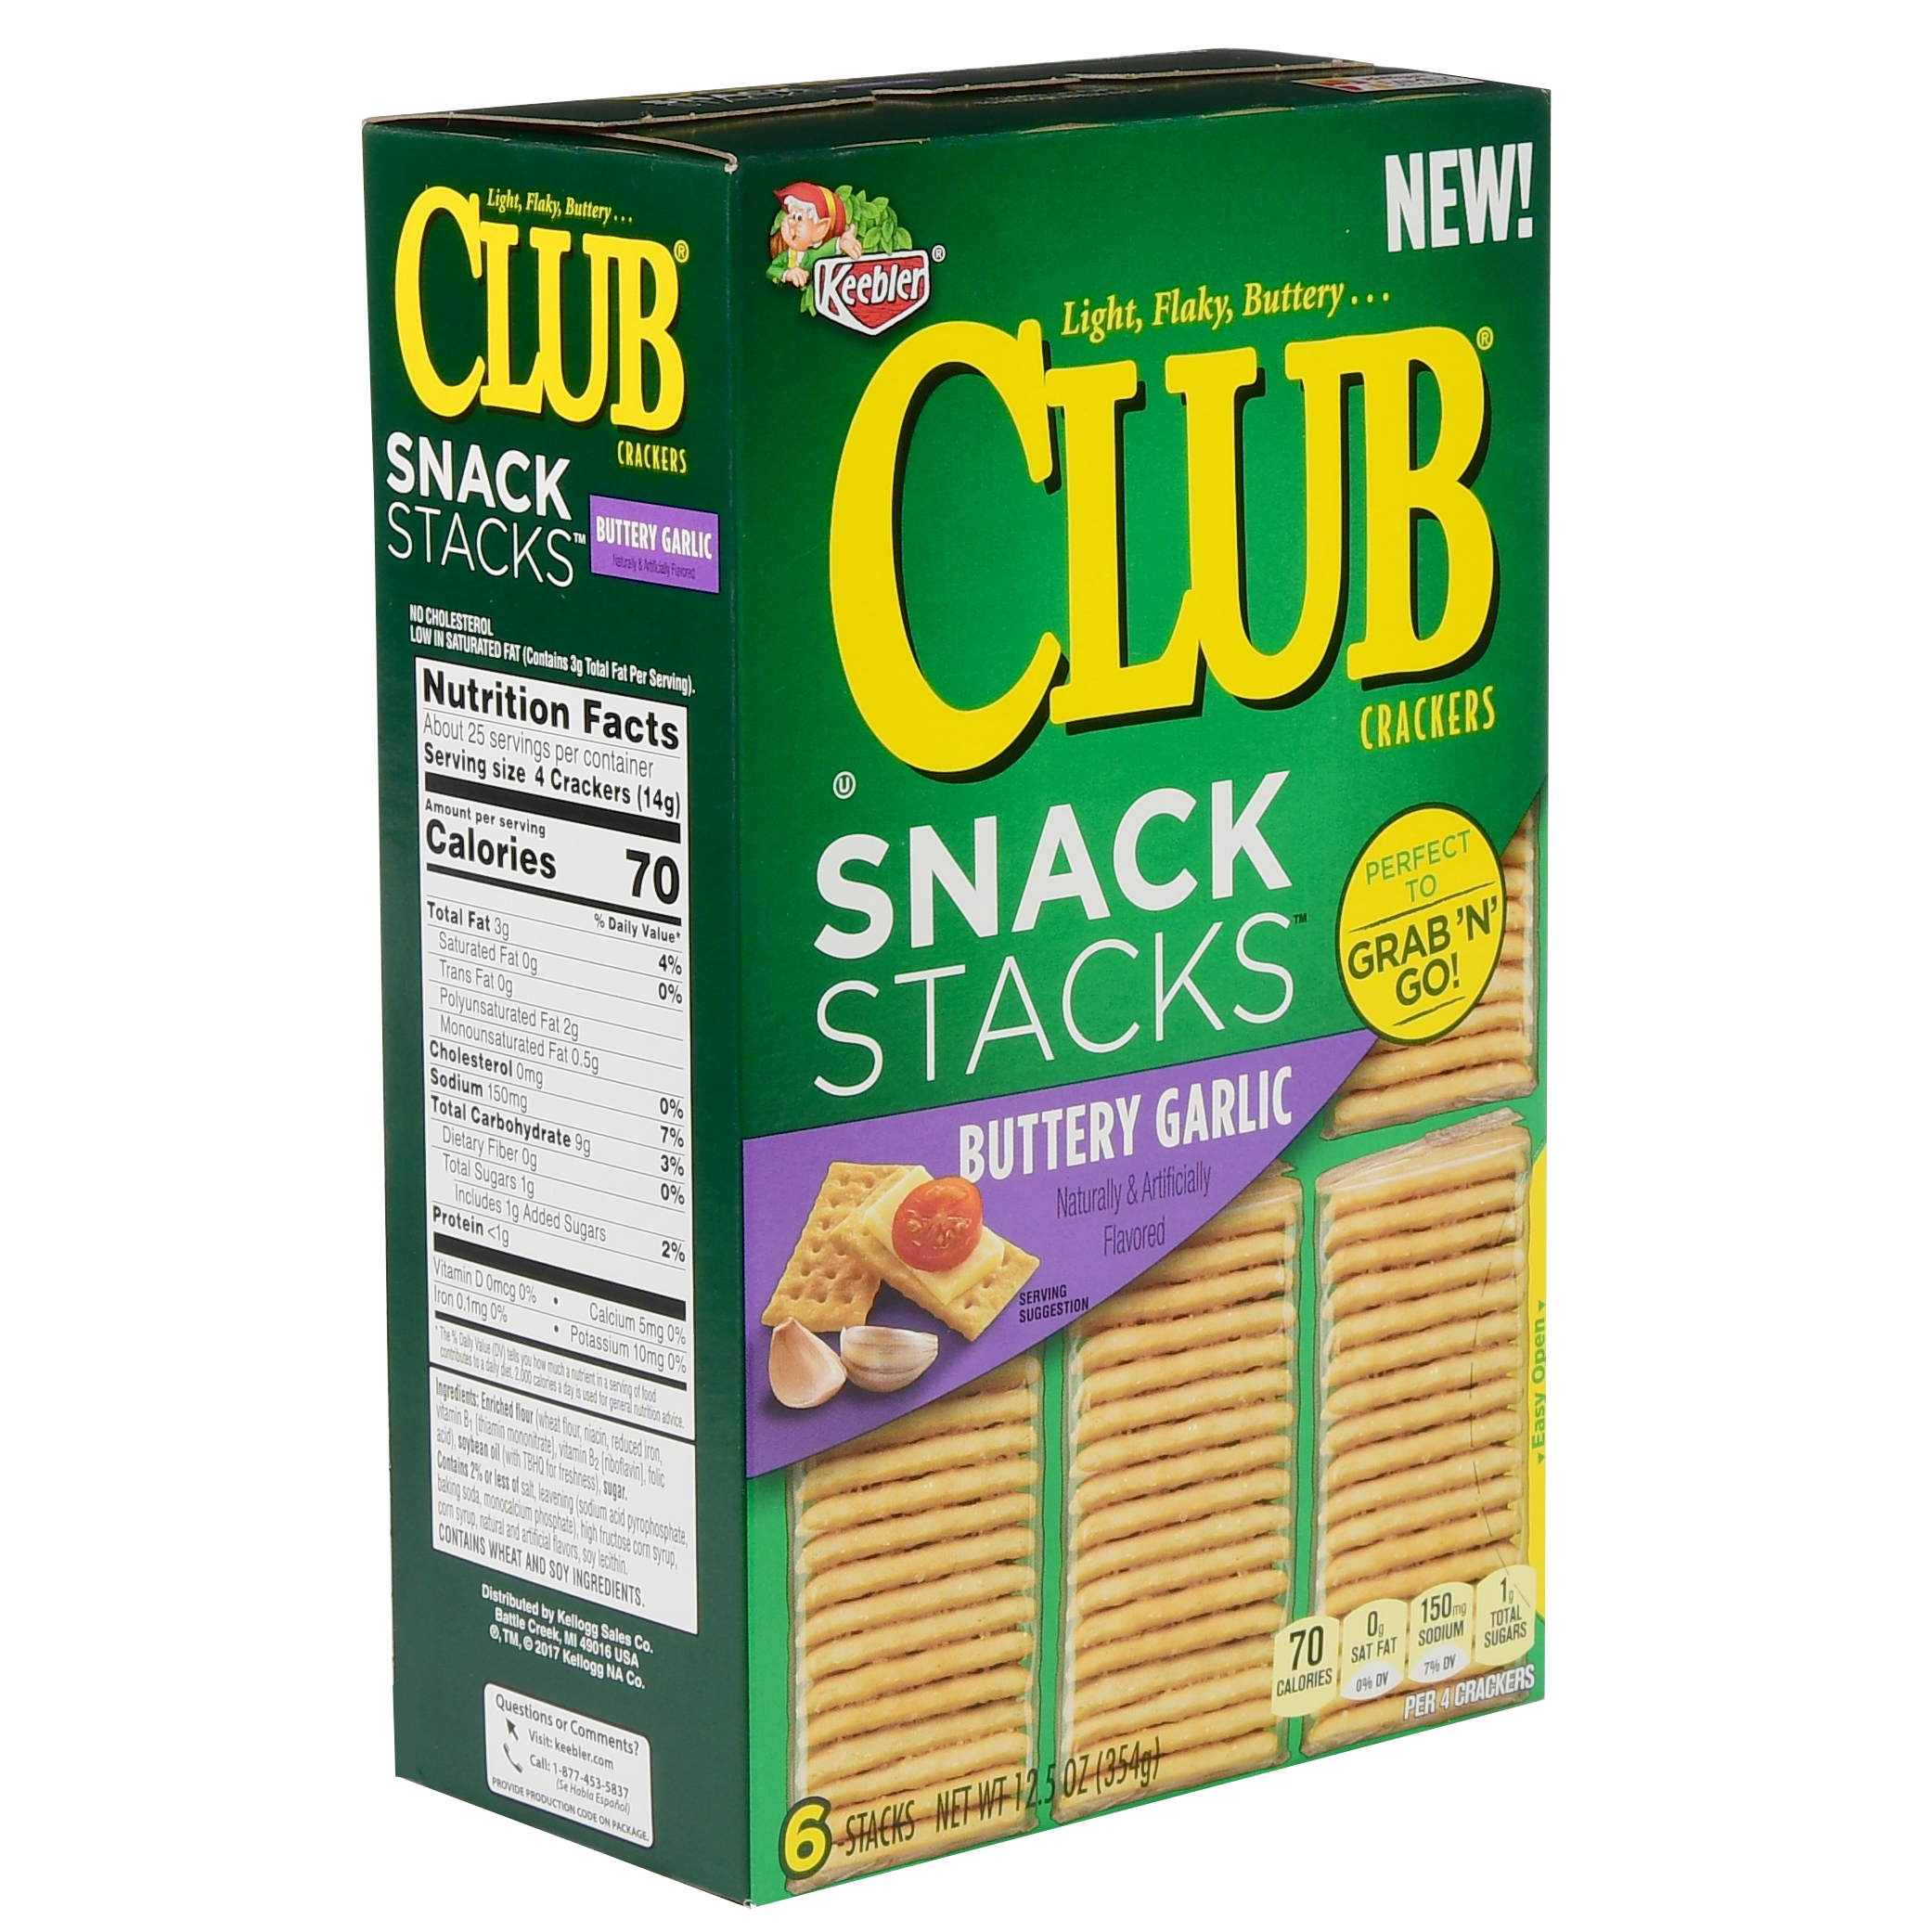 Keebler Club Snack Stacks Buttery Garlic Crackers 12.5 oz